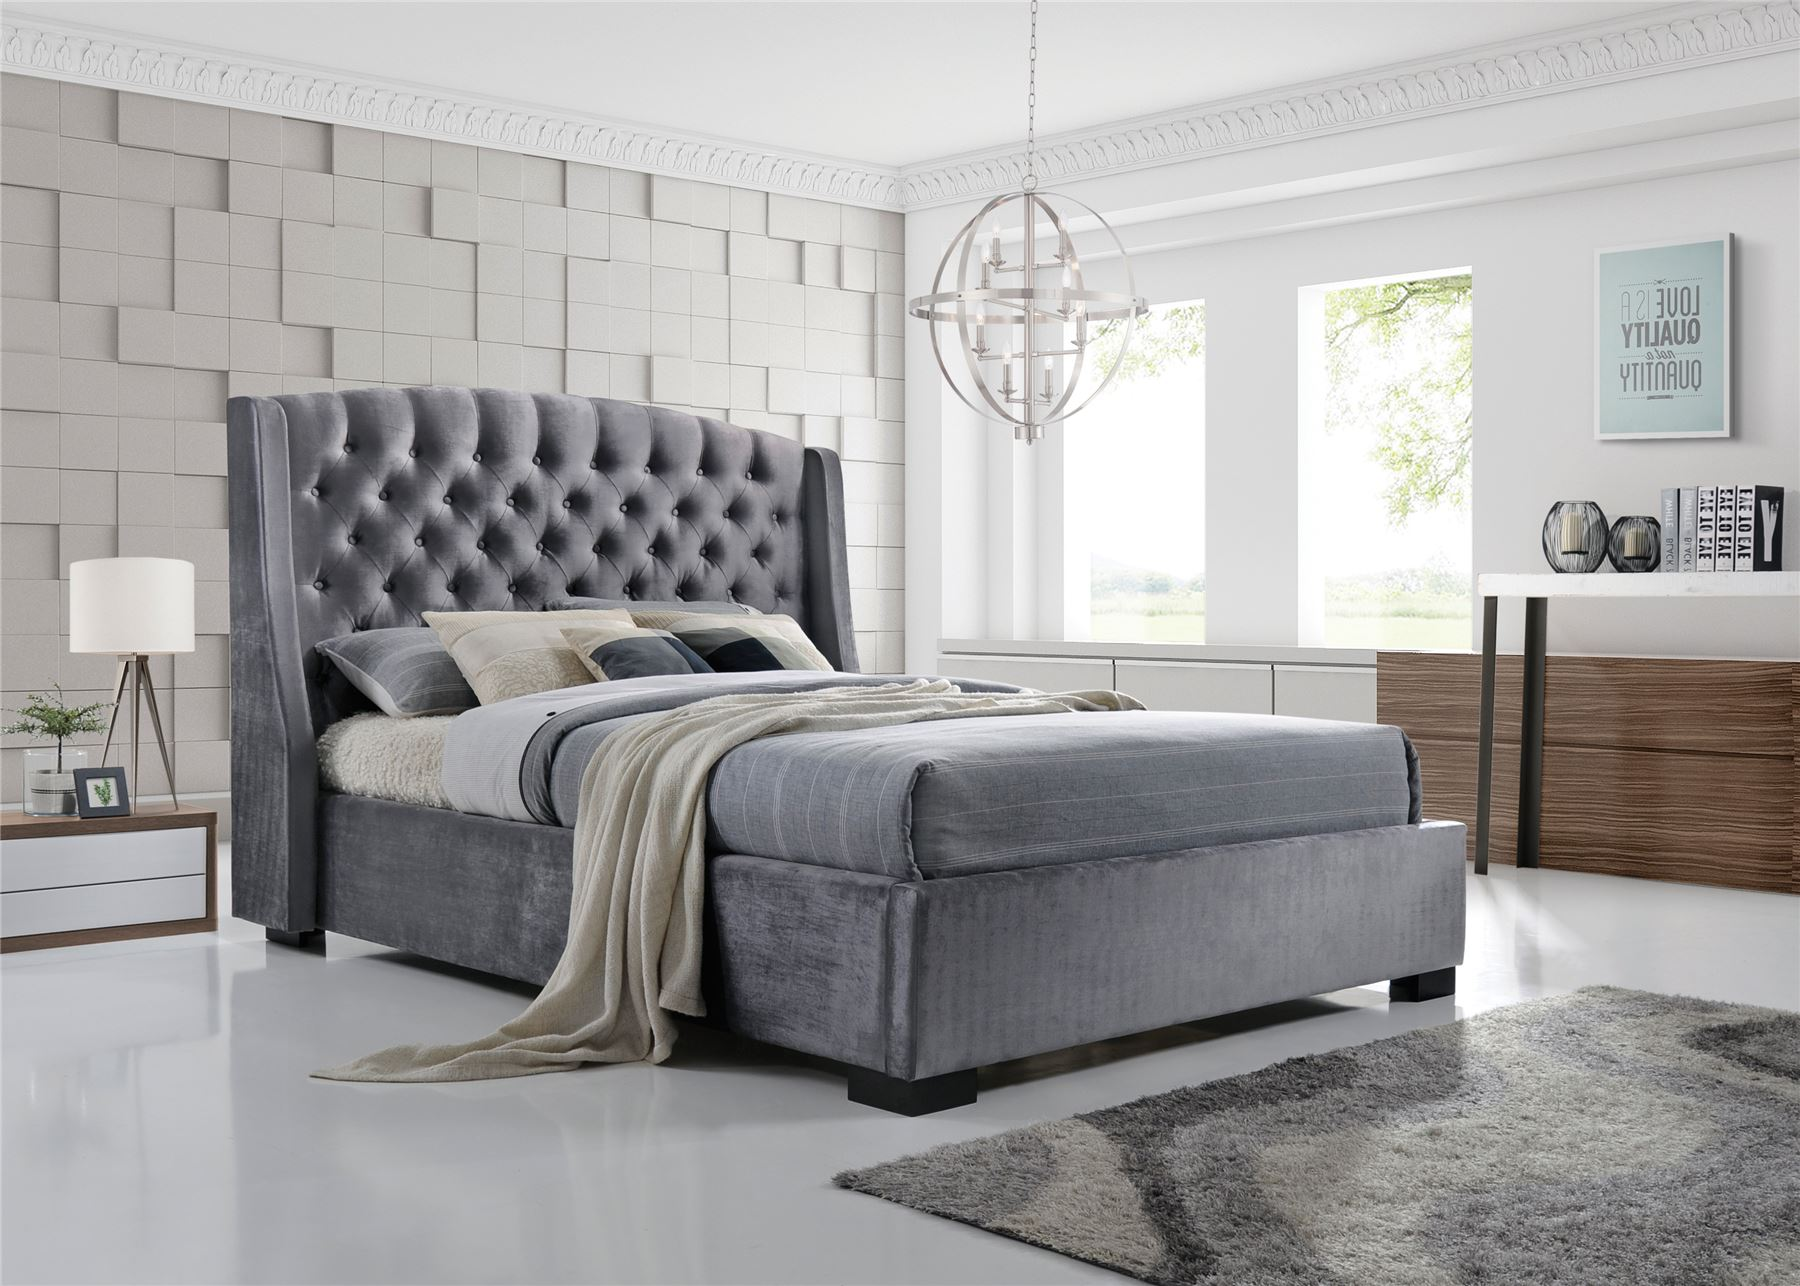 Details about brando wing back chesterfield king size bed frame 5ft 150cm grey velvet fabric